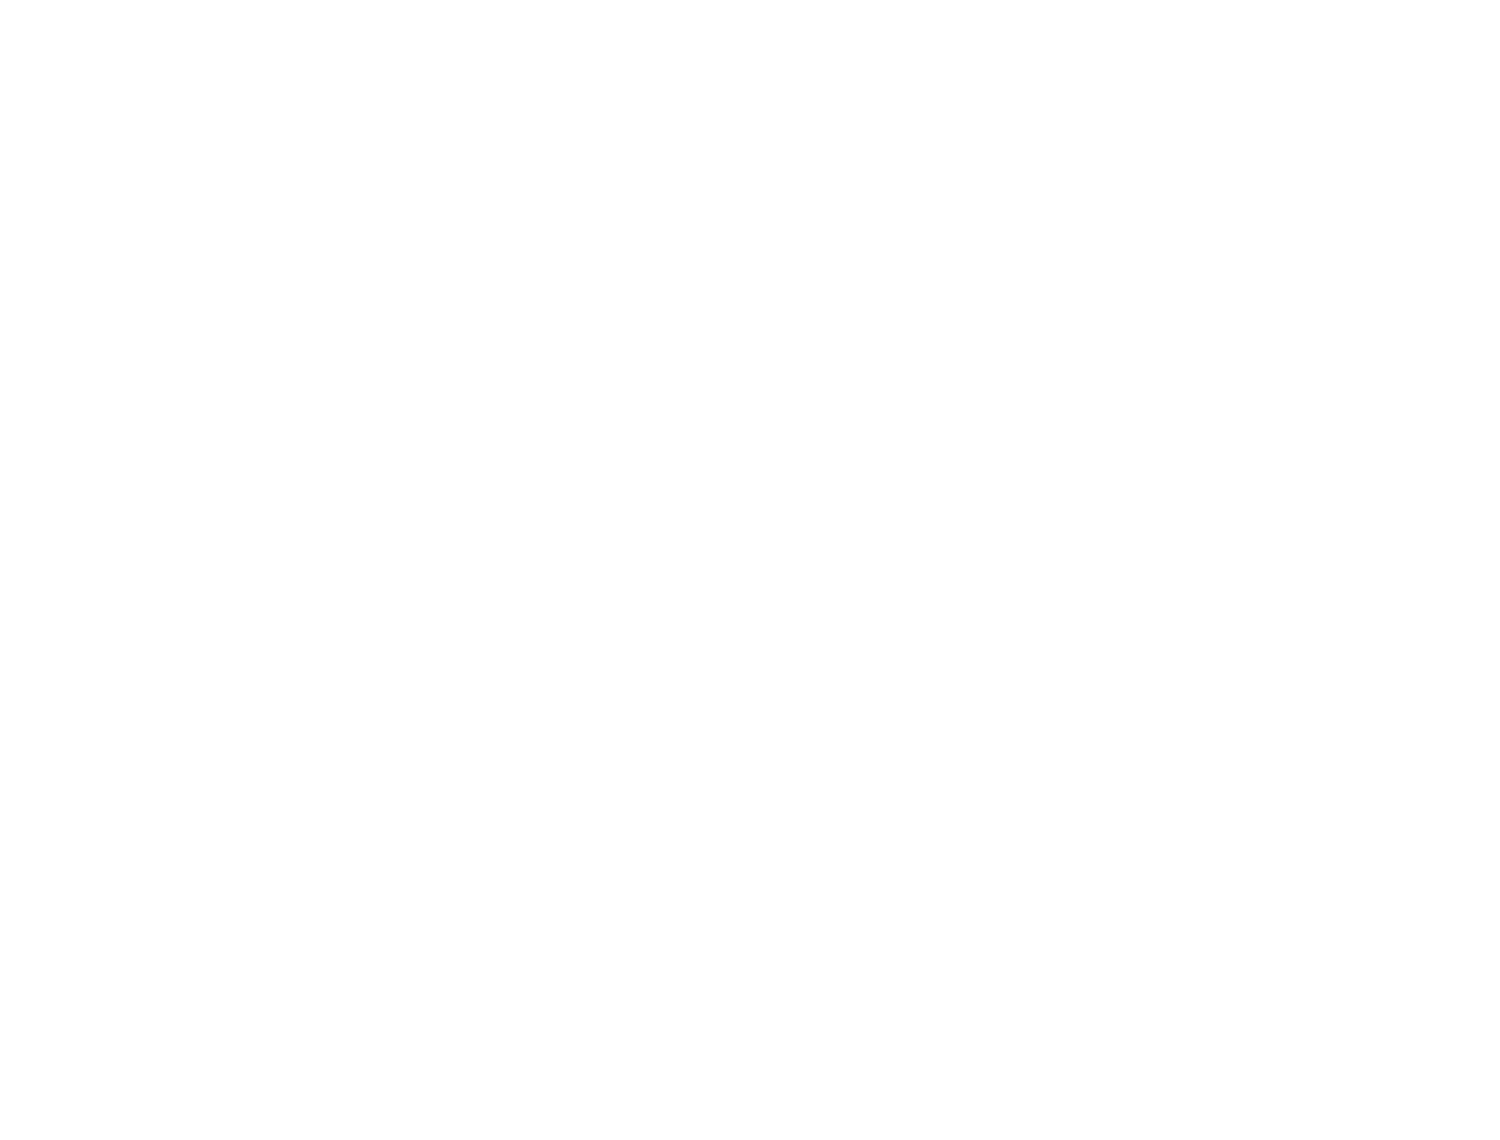 Mark Phillips Motion Design